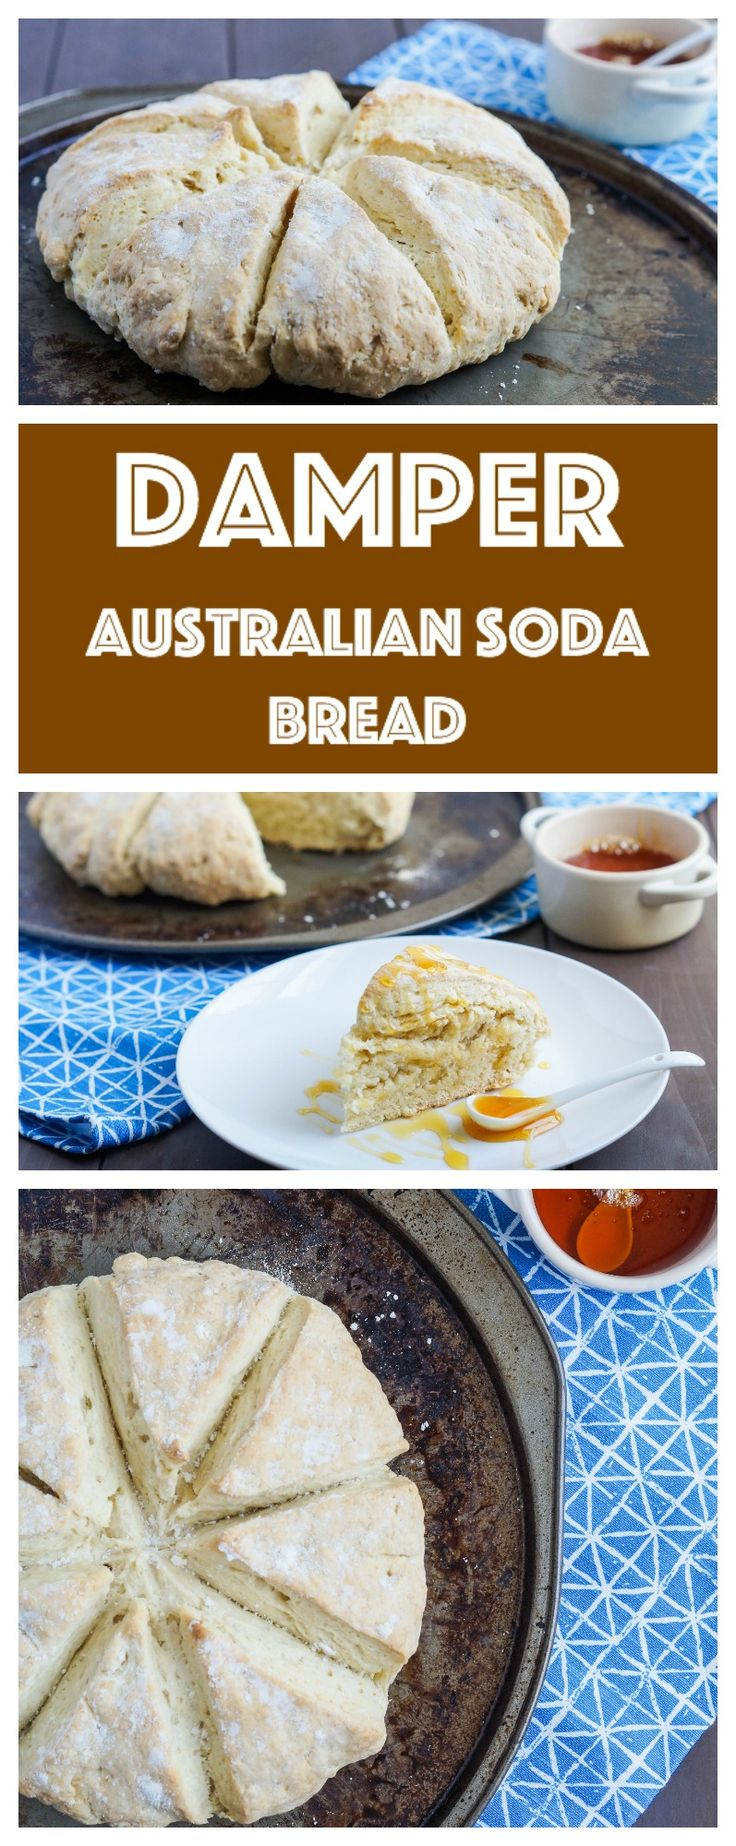 333 best australian food images on pinterest australian recipes damper australian soda bread forumfinder Image collections